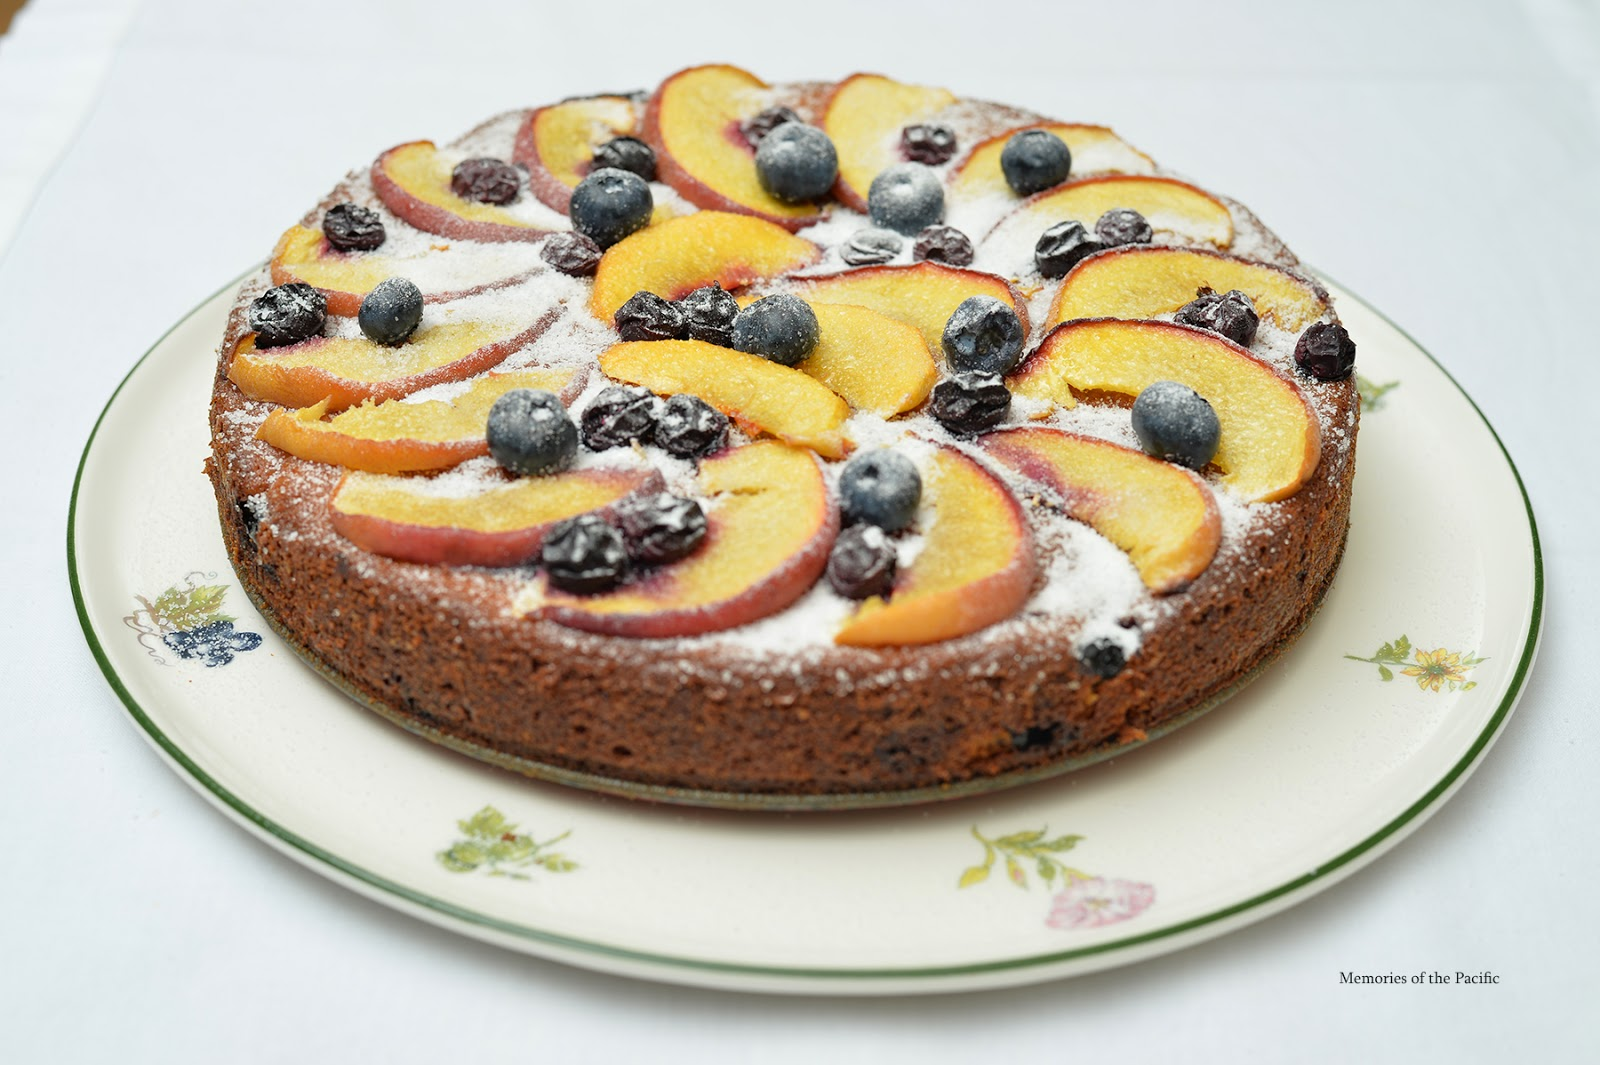 Peach, Blueberry & Greek Yogurt Cake